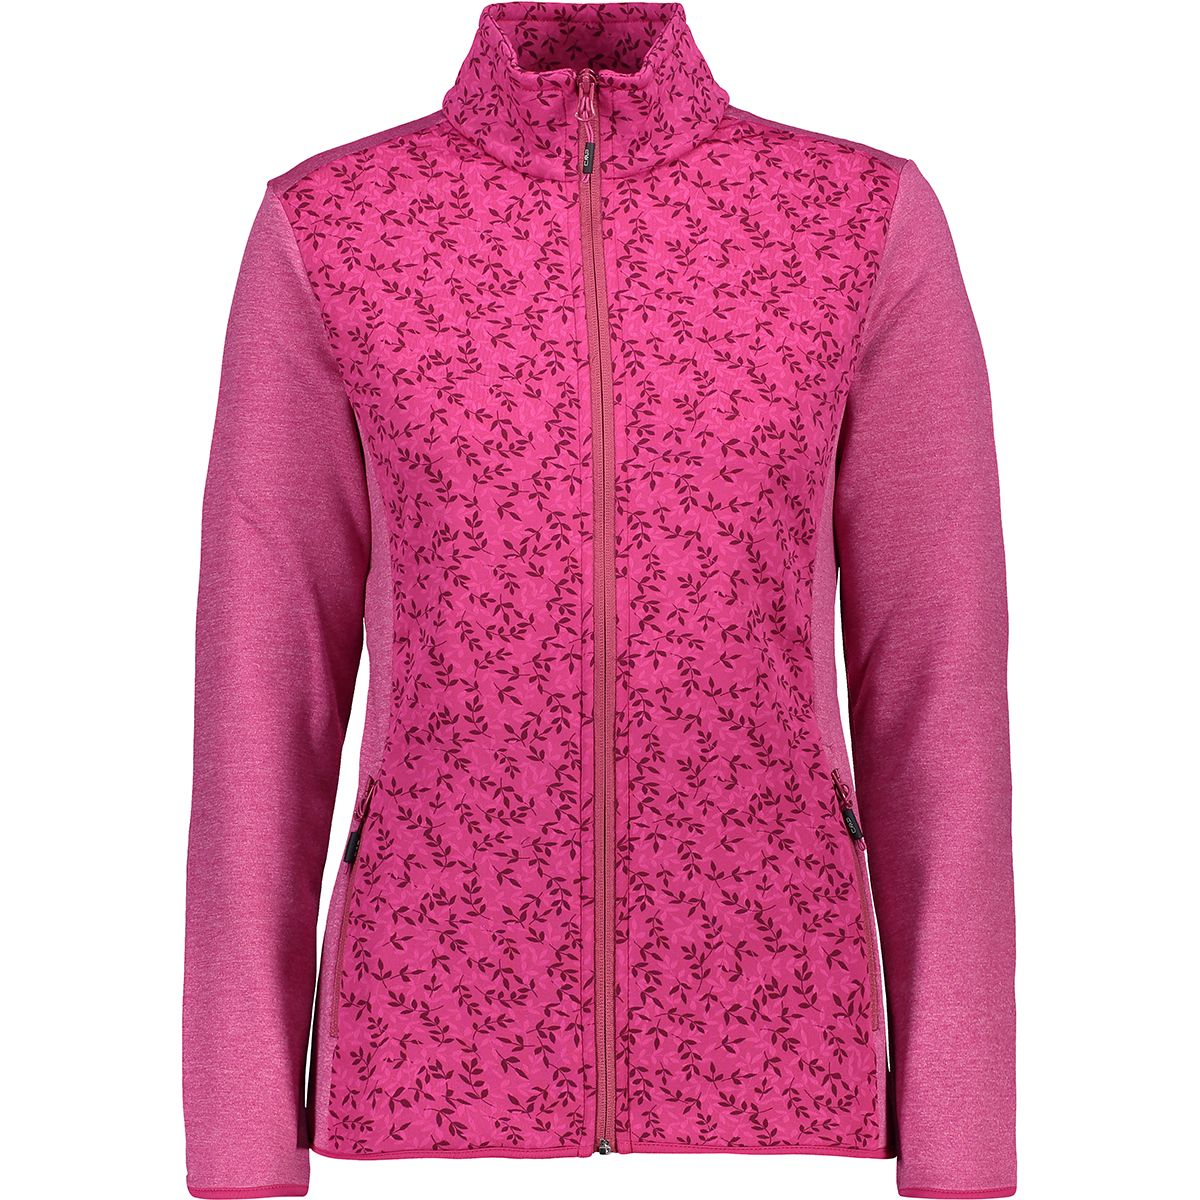 CMP Damen Stretch Fleece Jacke (Größe XXL, Pink) | Fleecejacken > Damen